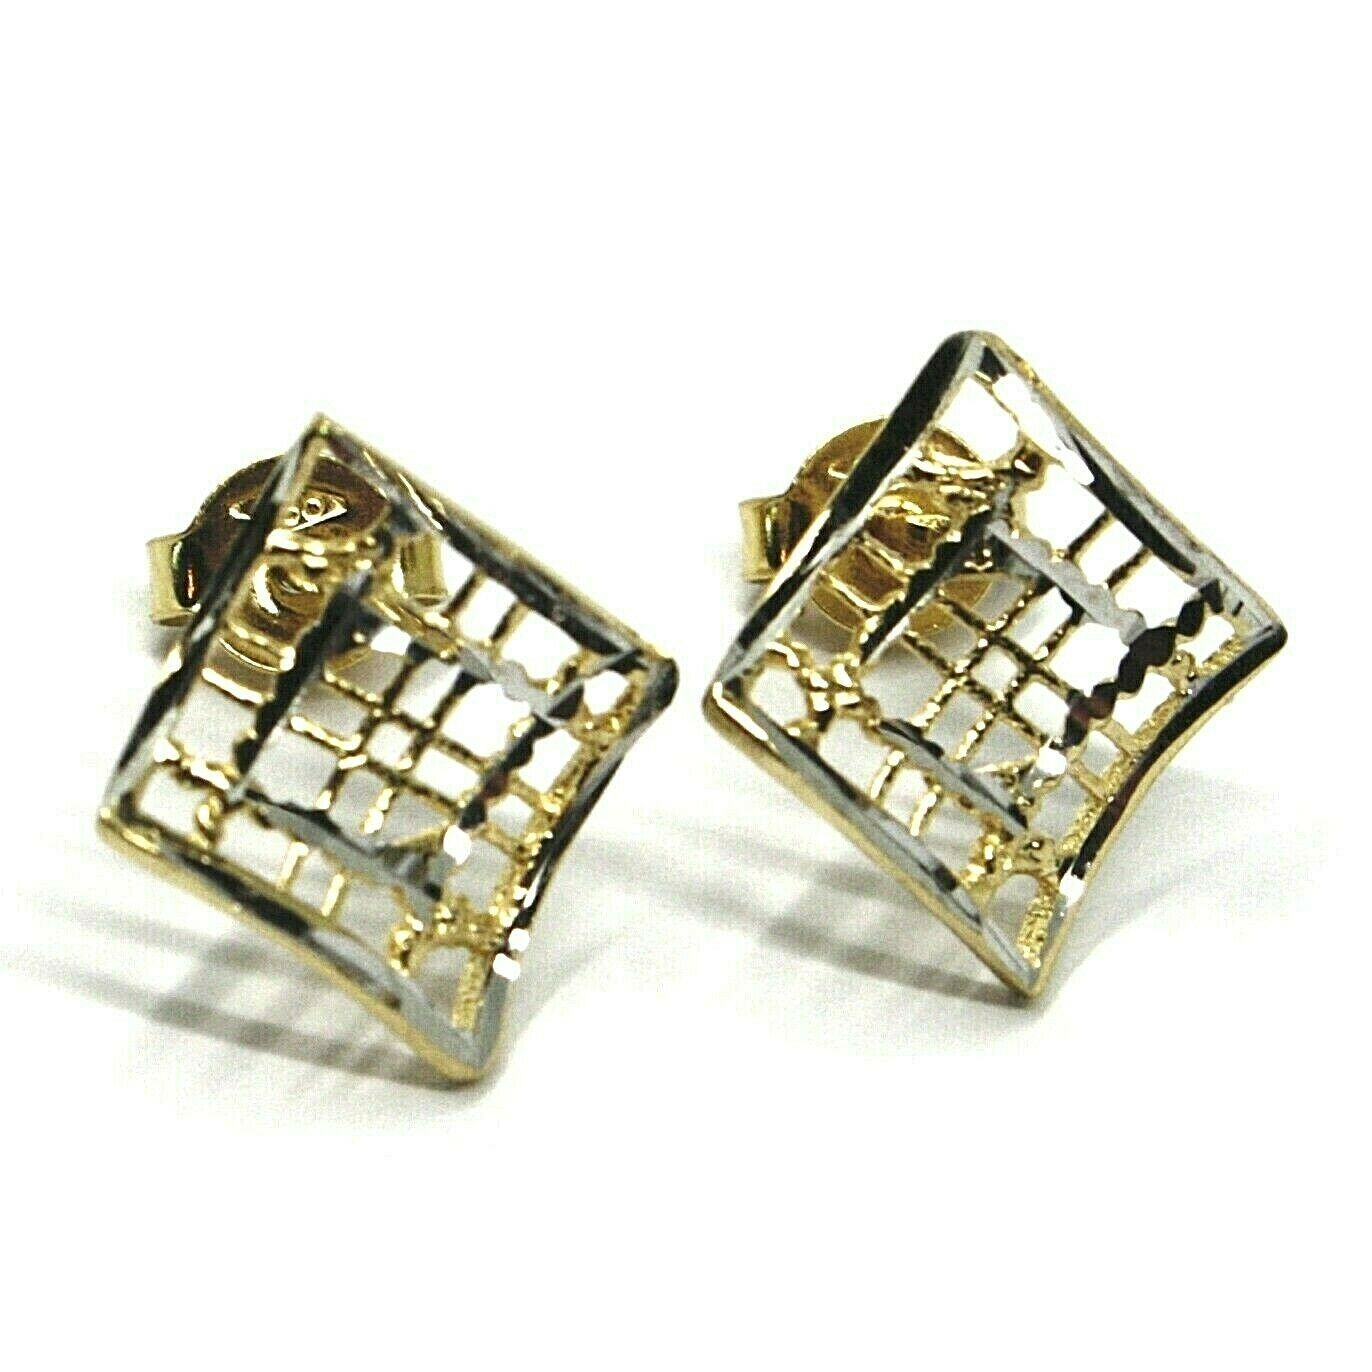 SOLID 18K YELLOW WHITE GOLD EARRINGS, WAVY, 13x12 mm, WORKED RHOMBUS, STRIPED